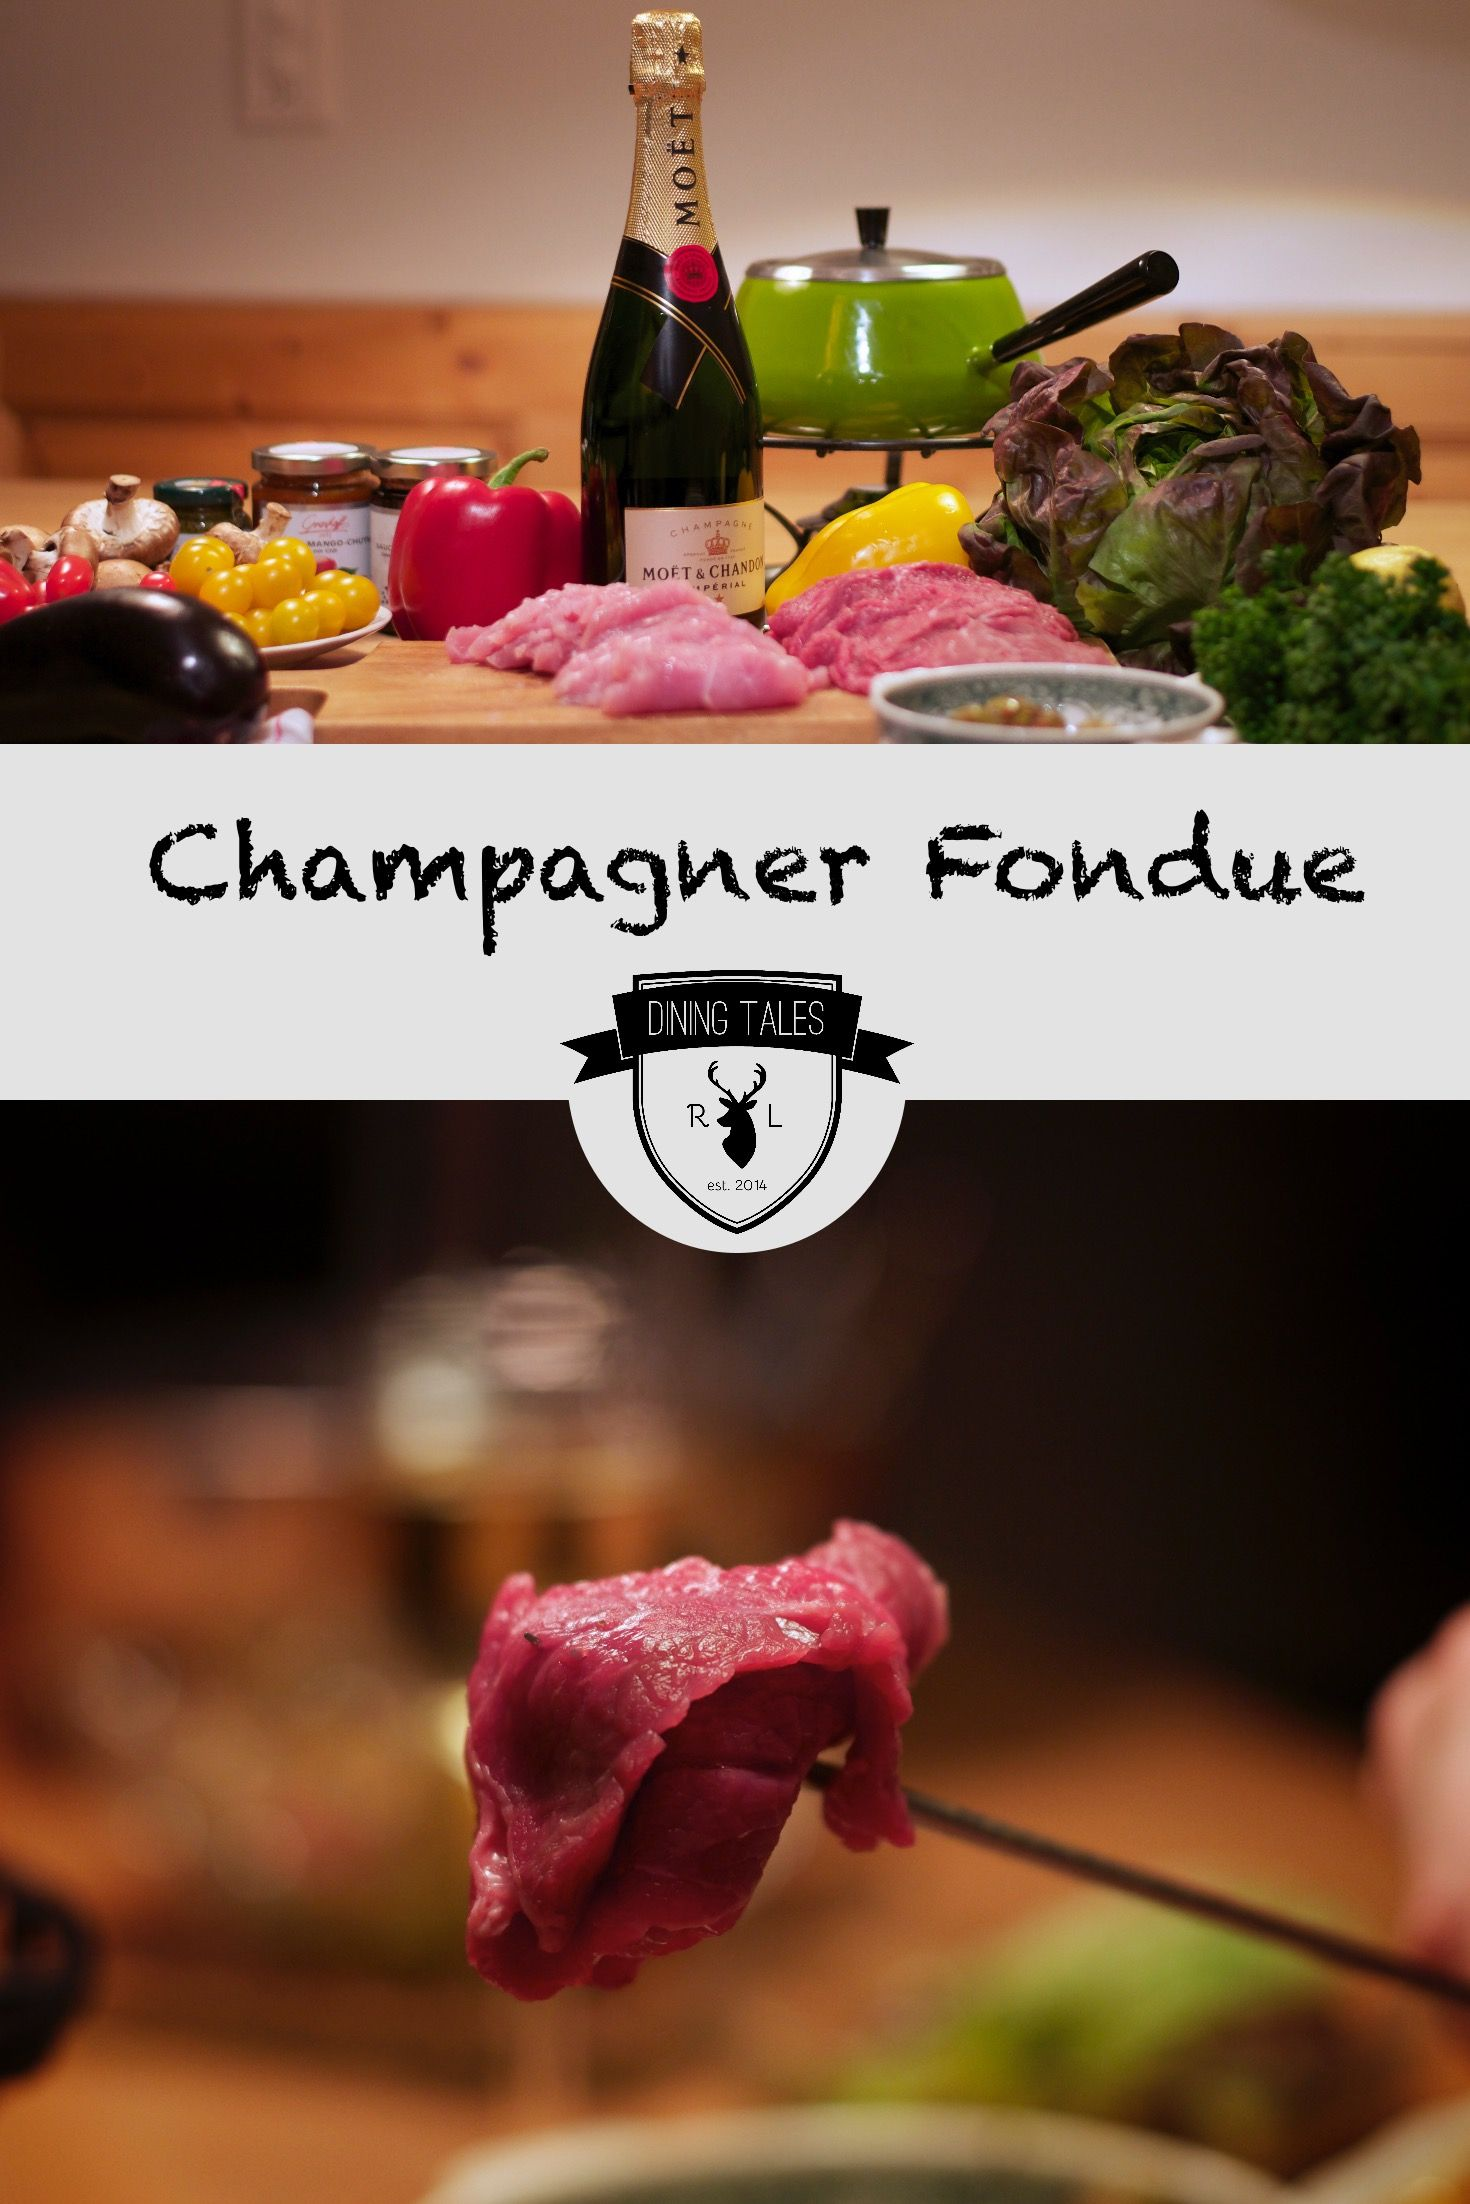 champagnerfondue f rs silvester dinner zu zweit blogger rezepte fondue silvester und. Black Bedroom Furniture Sets. Home Design Ideas